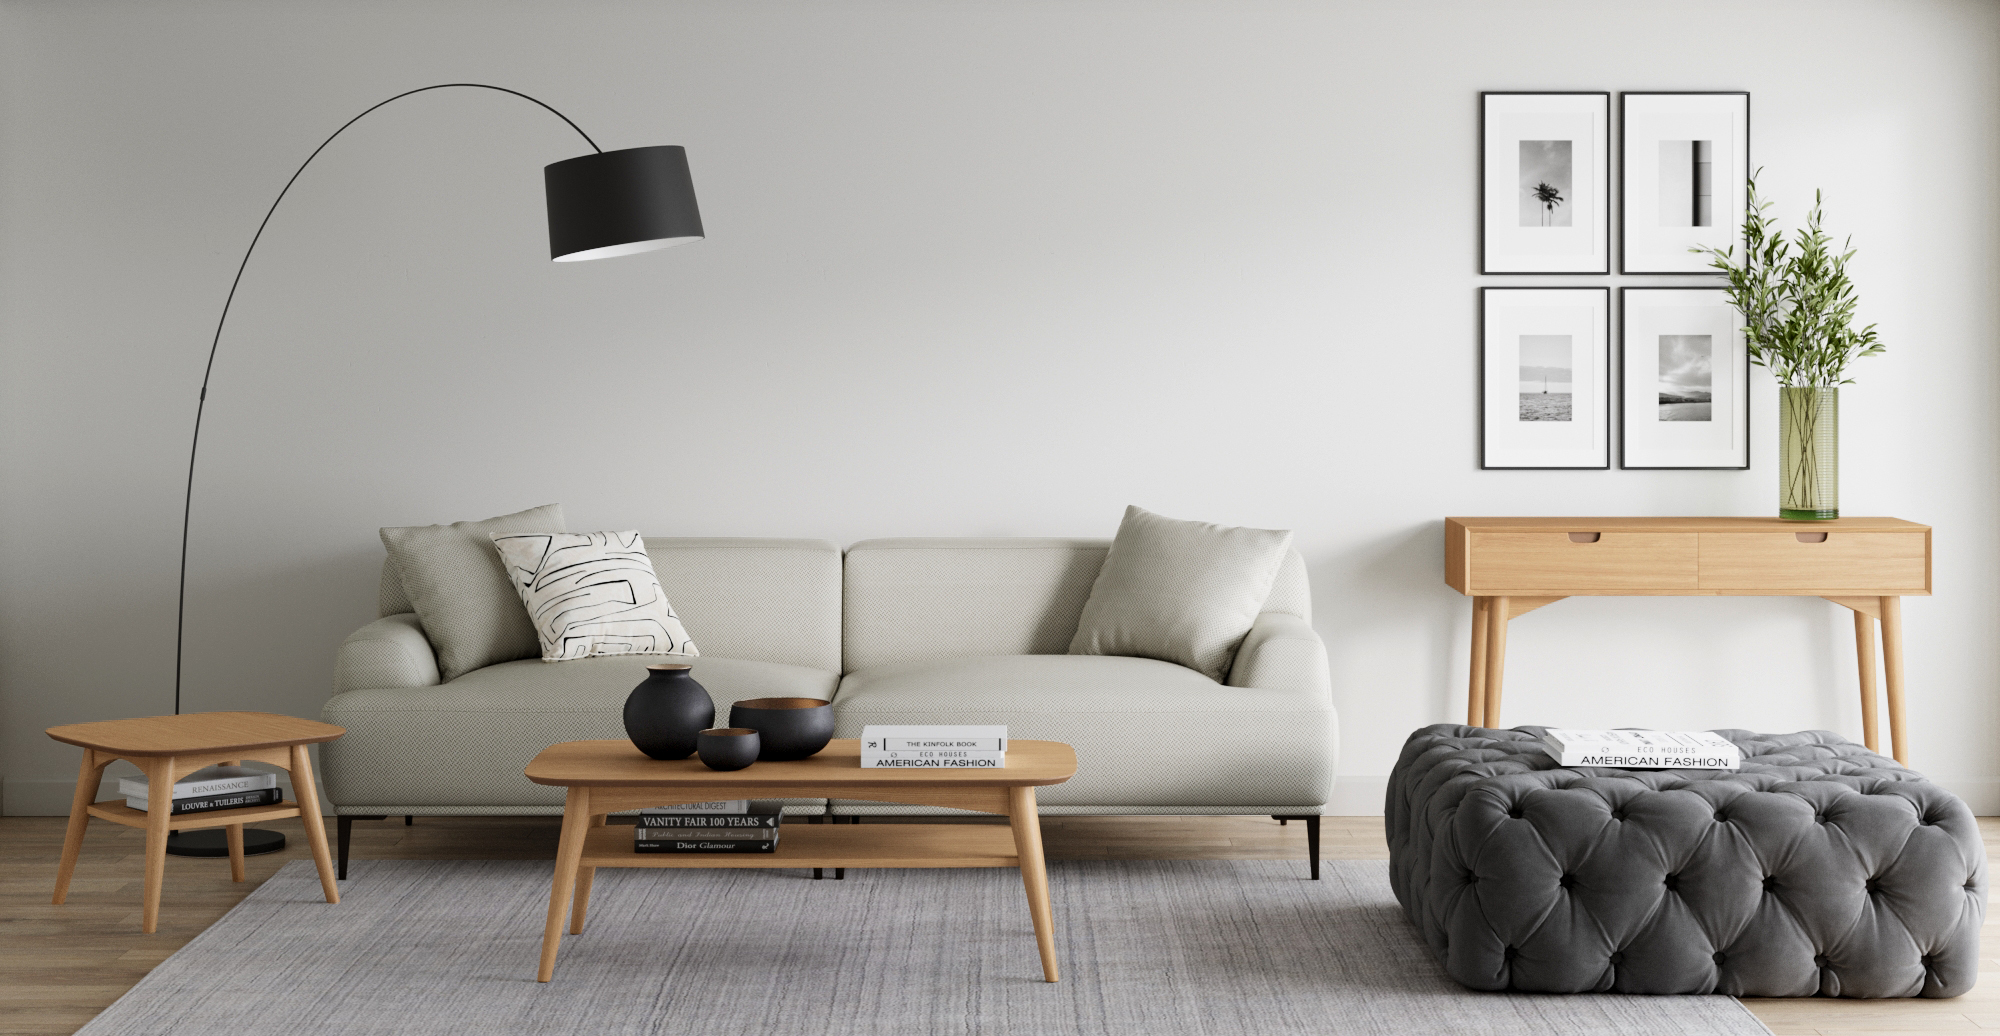 Lena Square Ottoman styled in Modern Contemporary living room